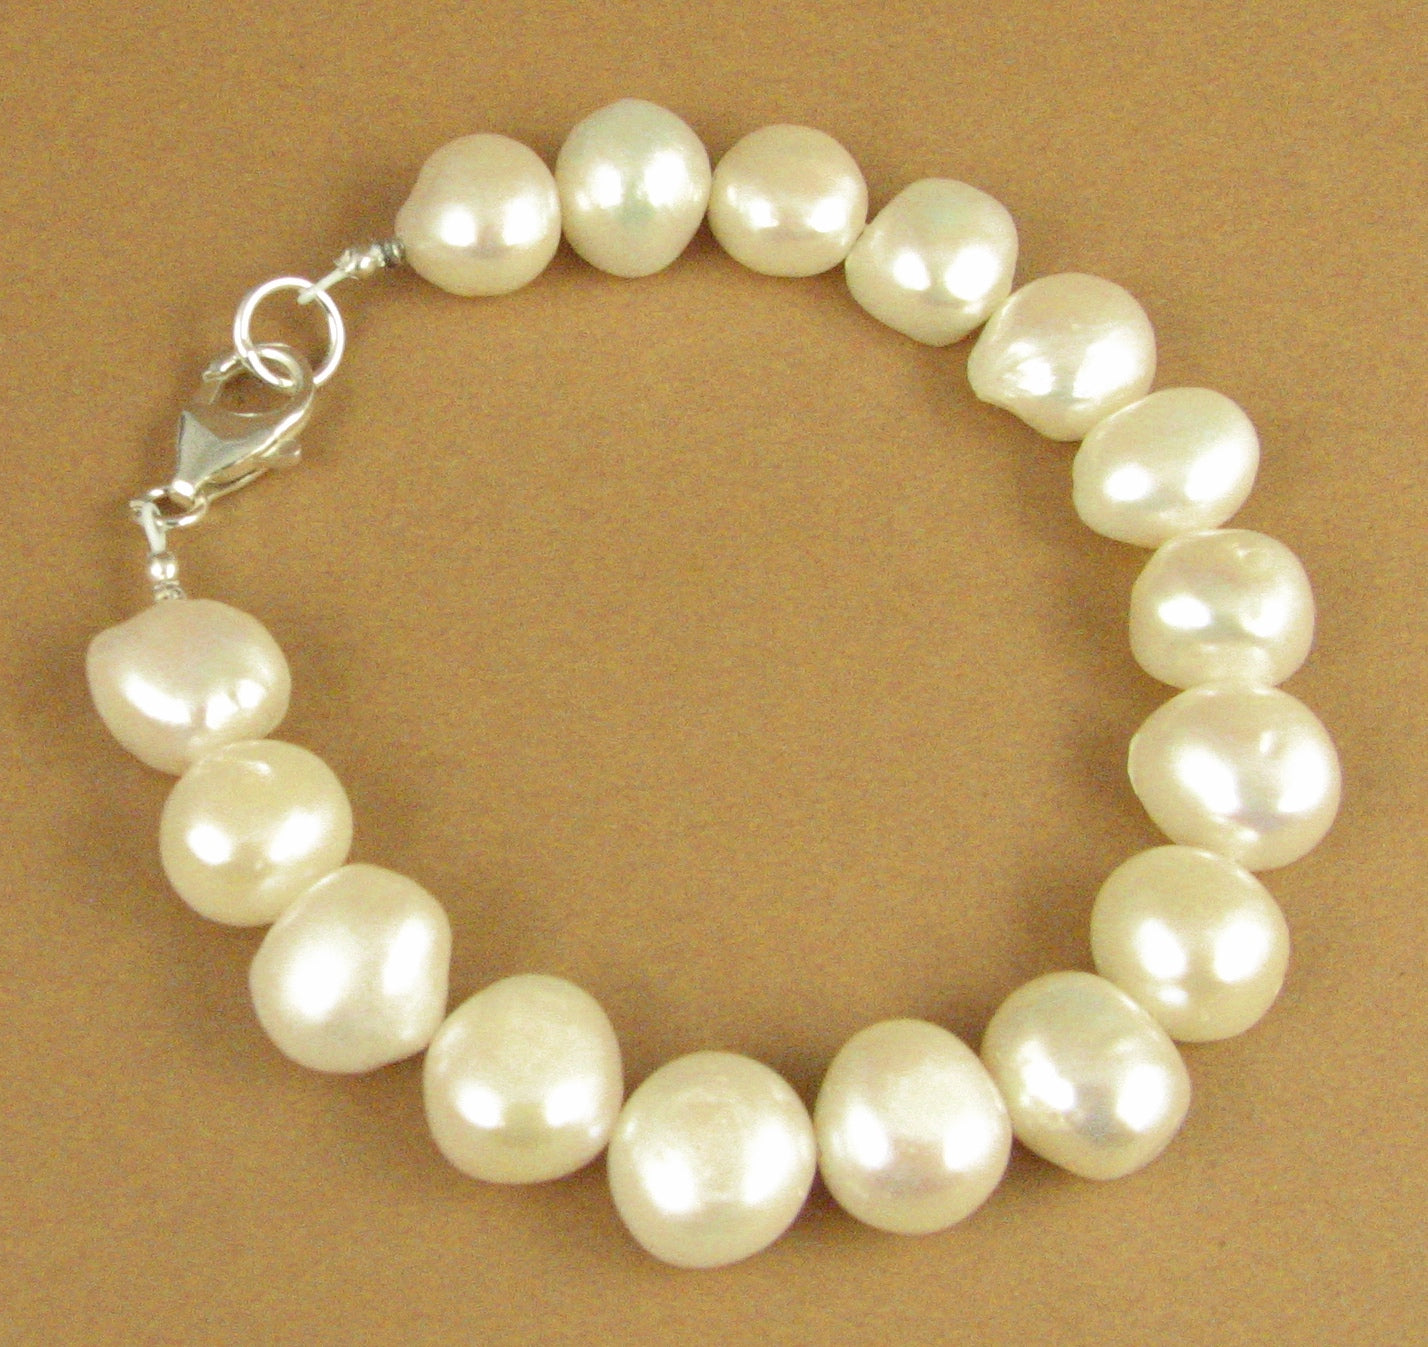 Pearl chunky bracelet. Real pearls. White. Sterling silver 925. Handmade.